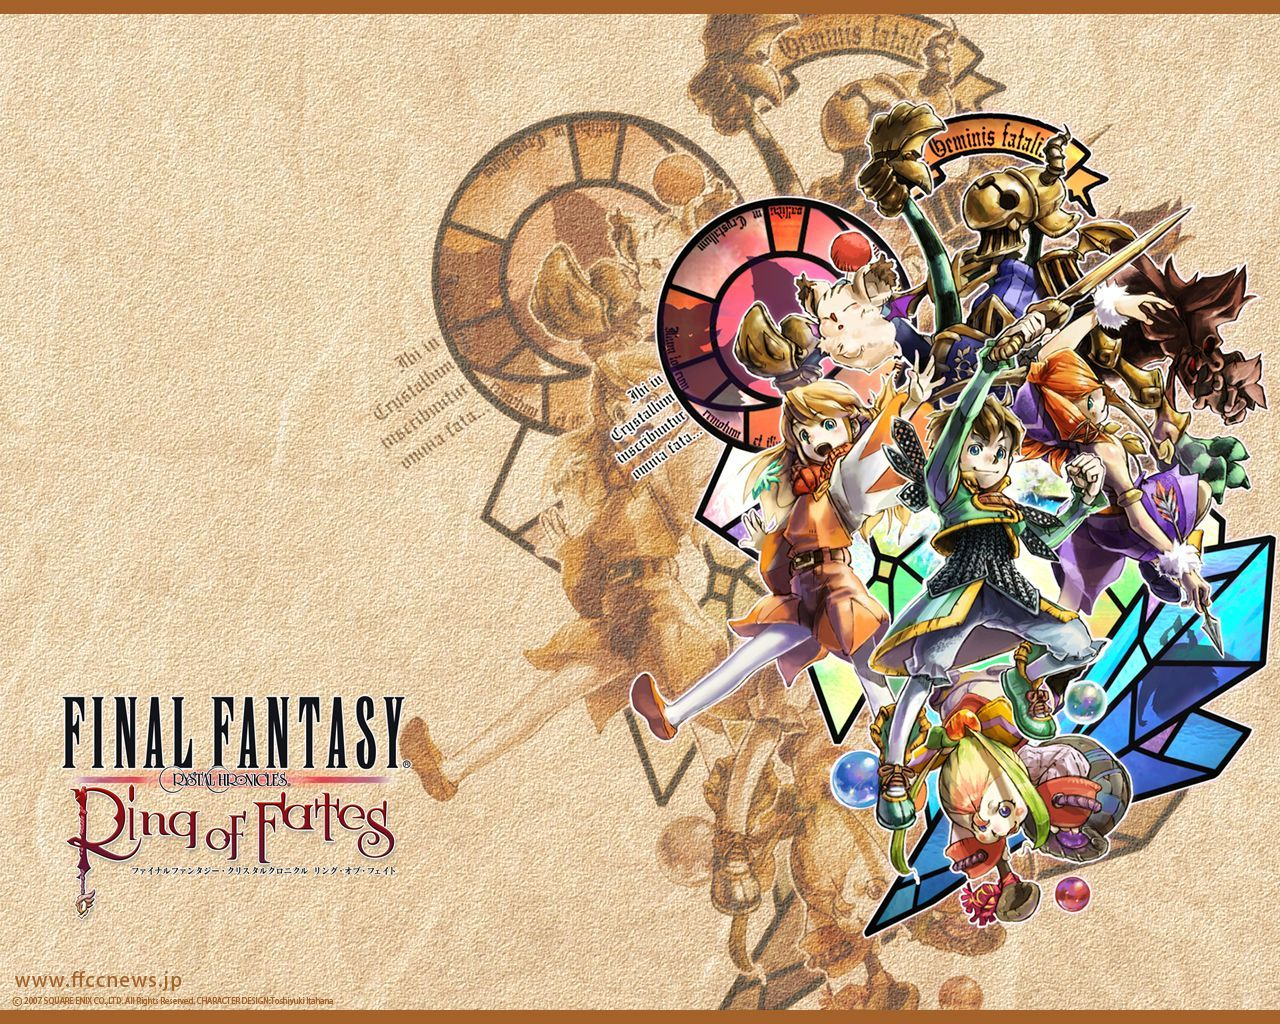 Week 17 Crystal Chronicles Rings Of Fate Final Fantasy